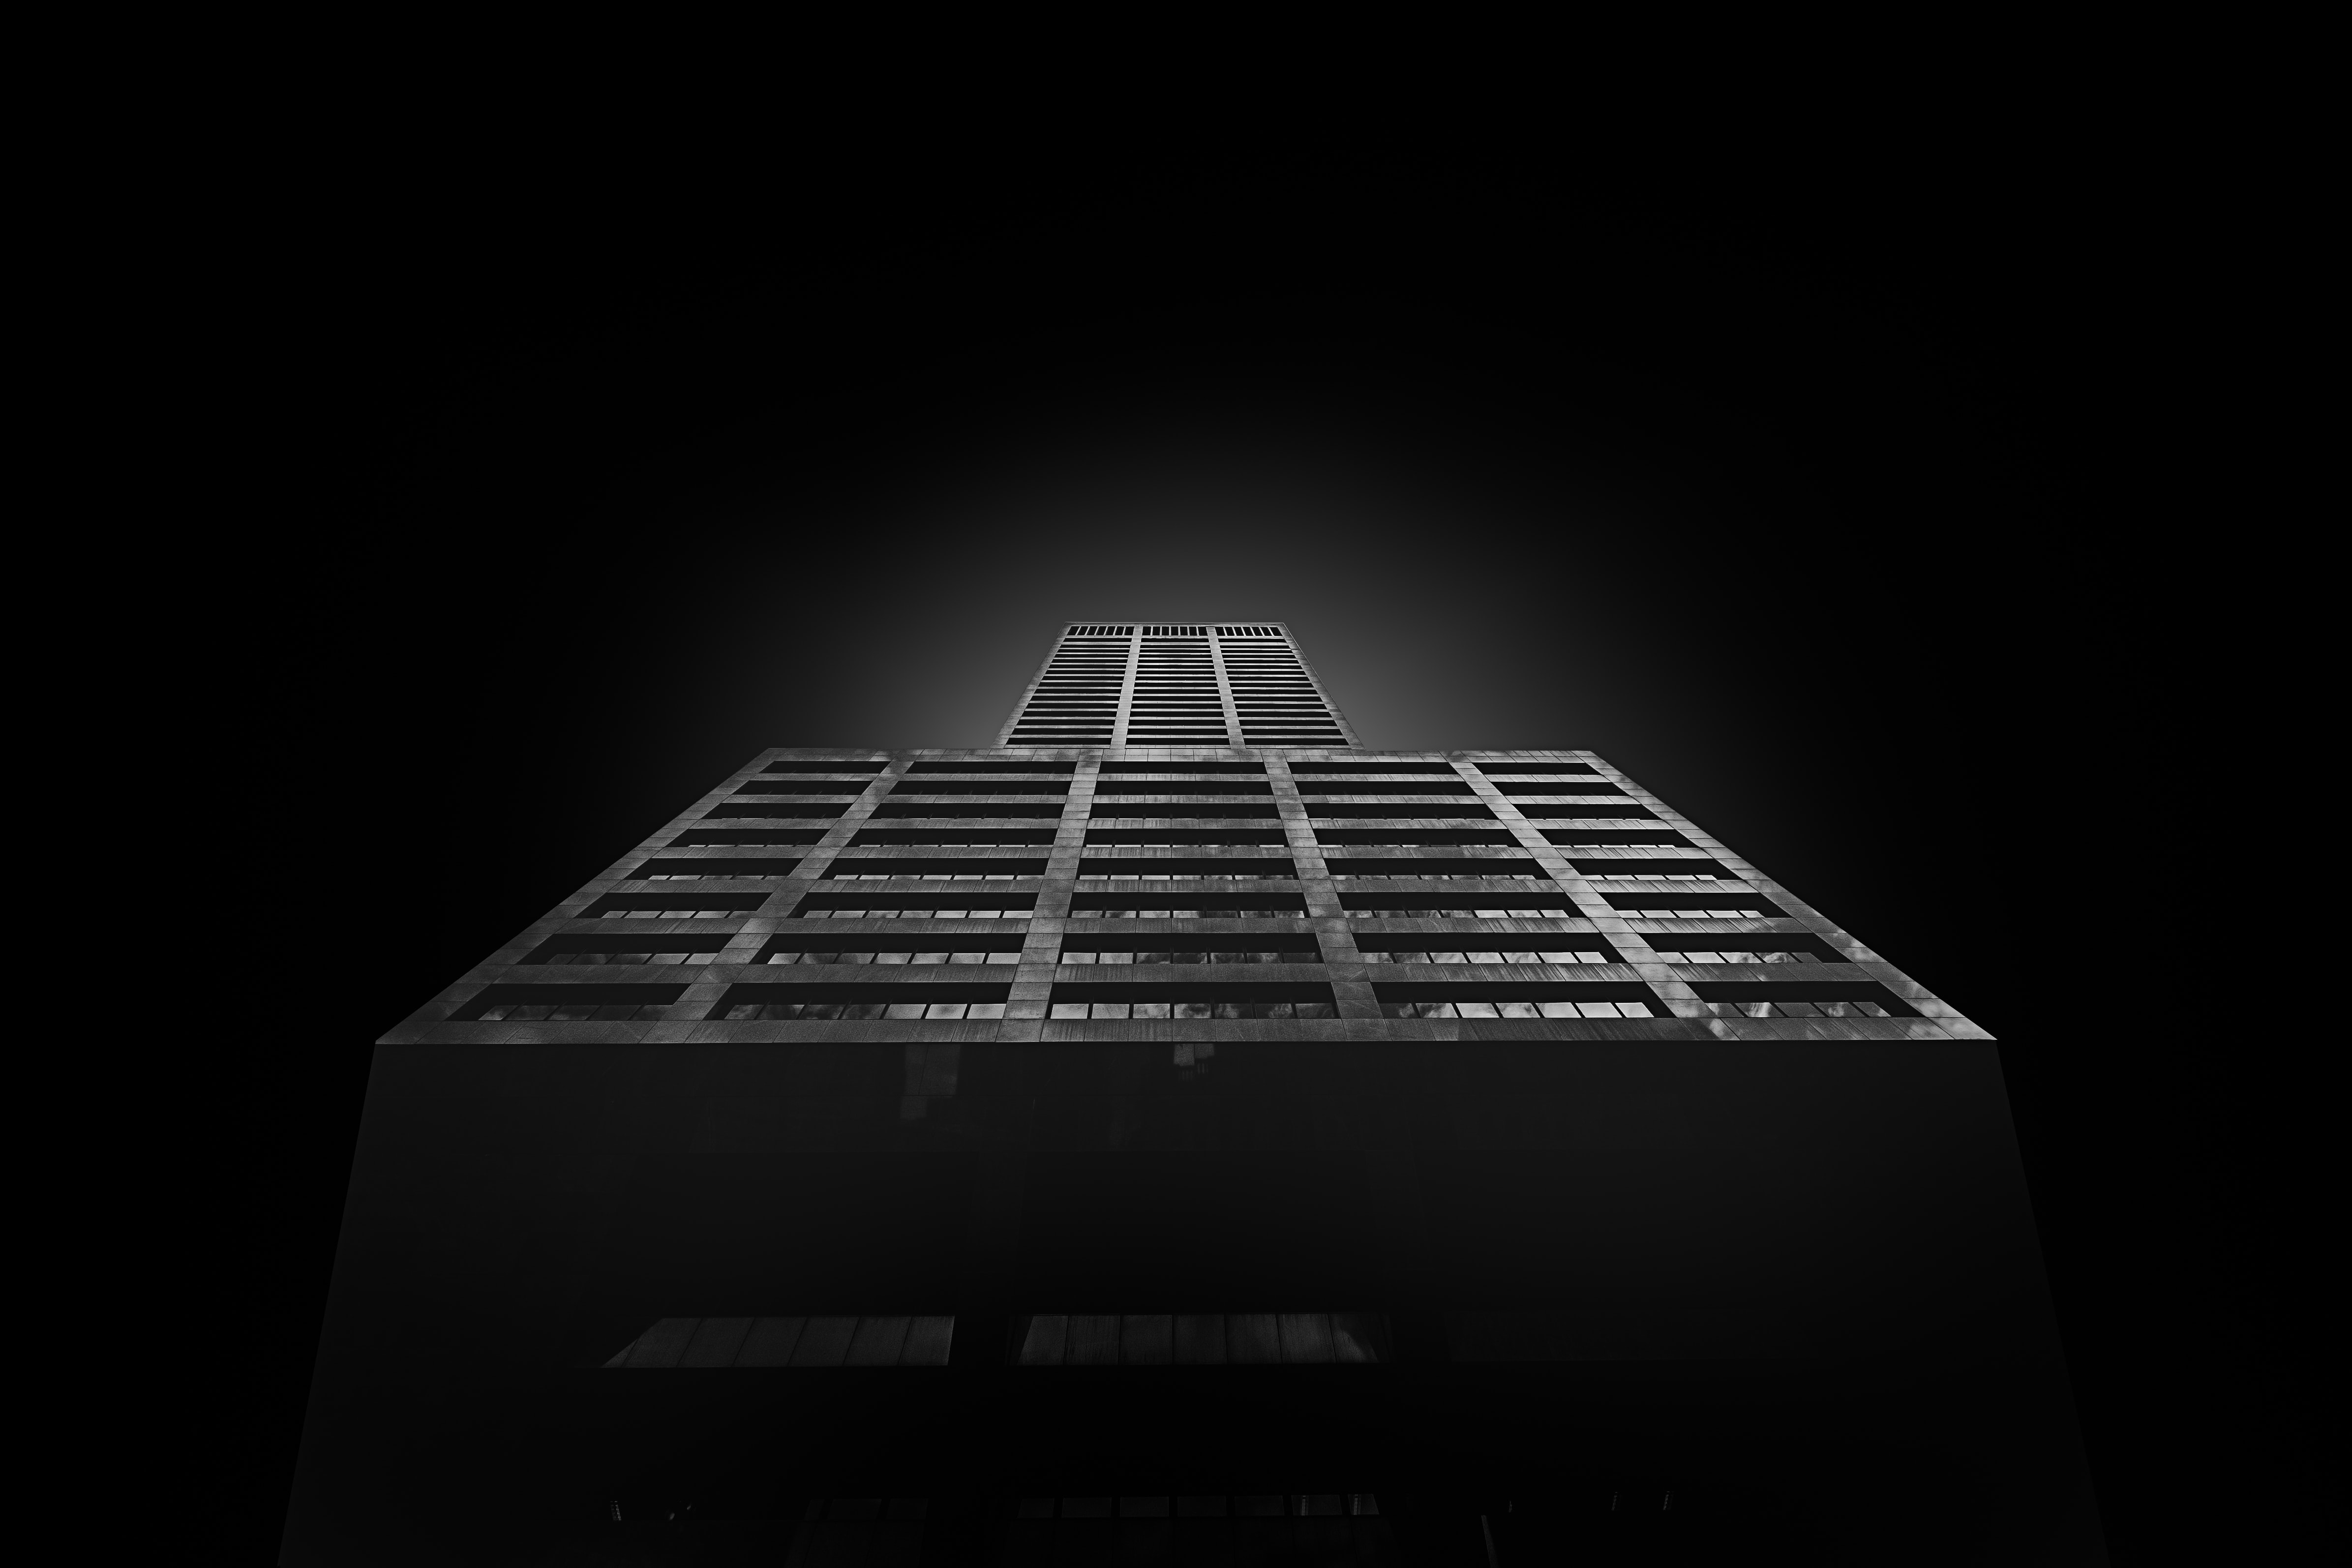 Black and white shot from below of building architecture and light glow on black background